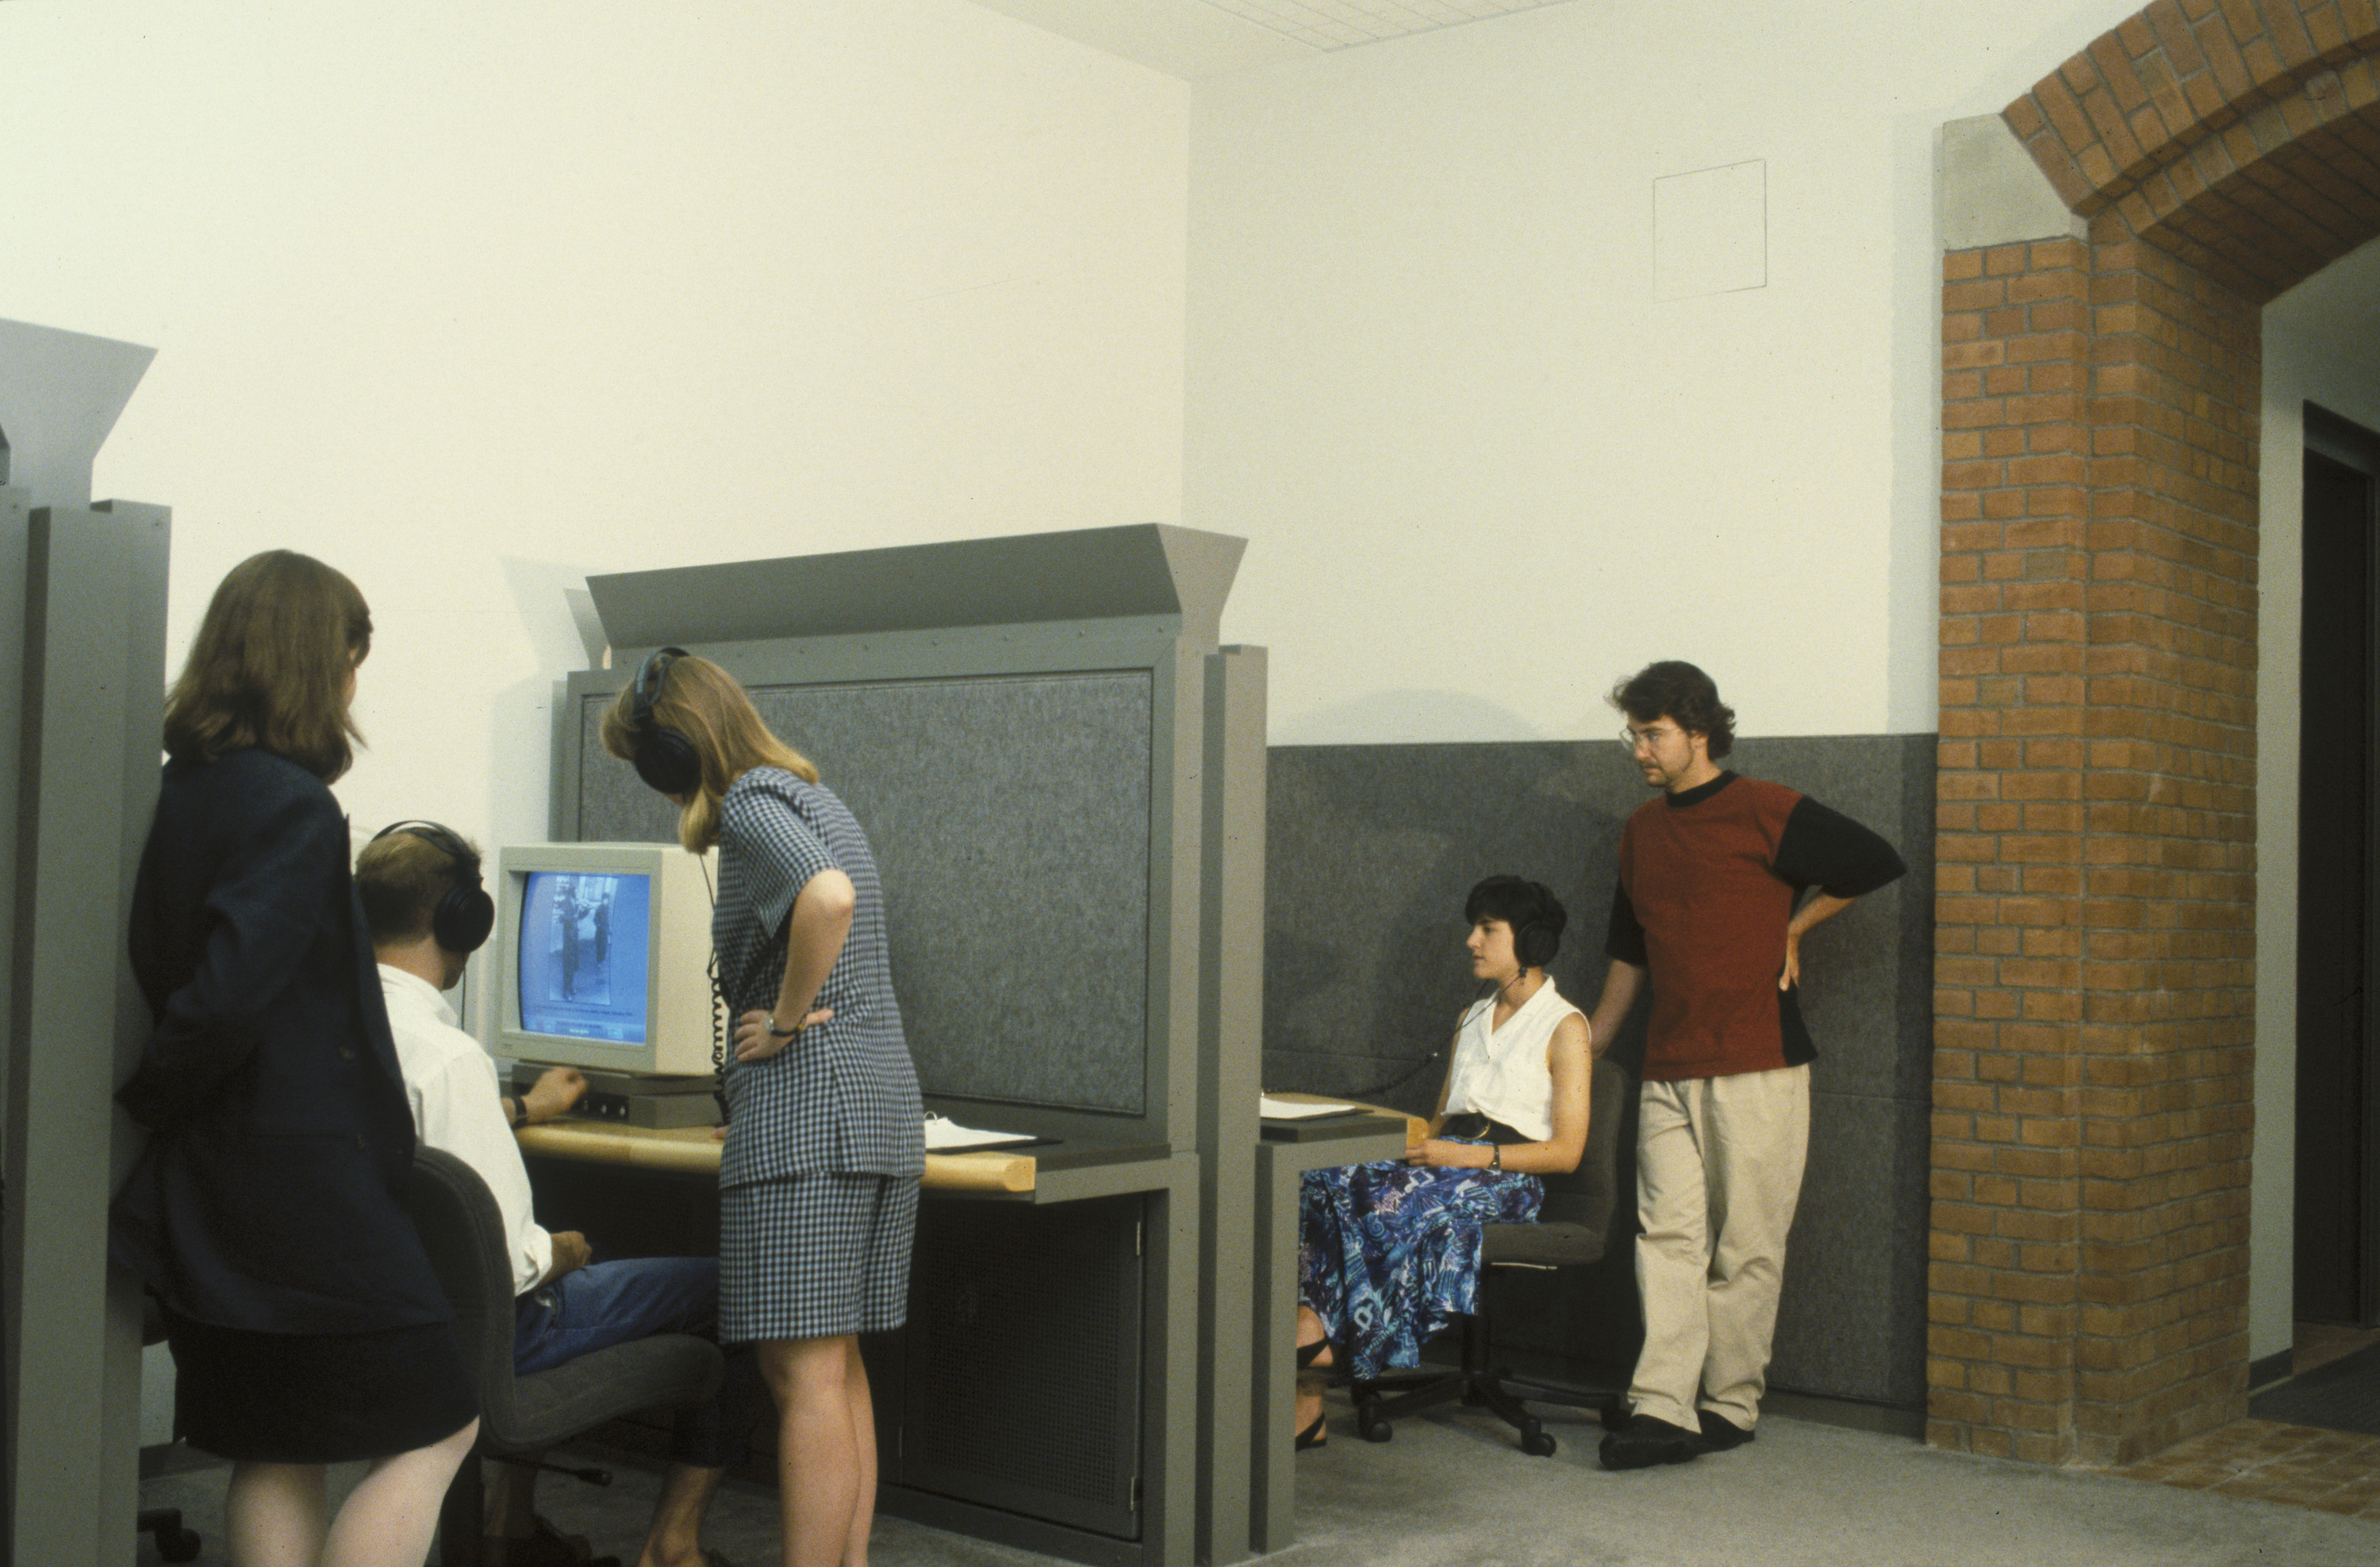 Visitors using computer terminals in the Wexner Learning Center at the U.S. Holocaust Memorial Museum.